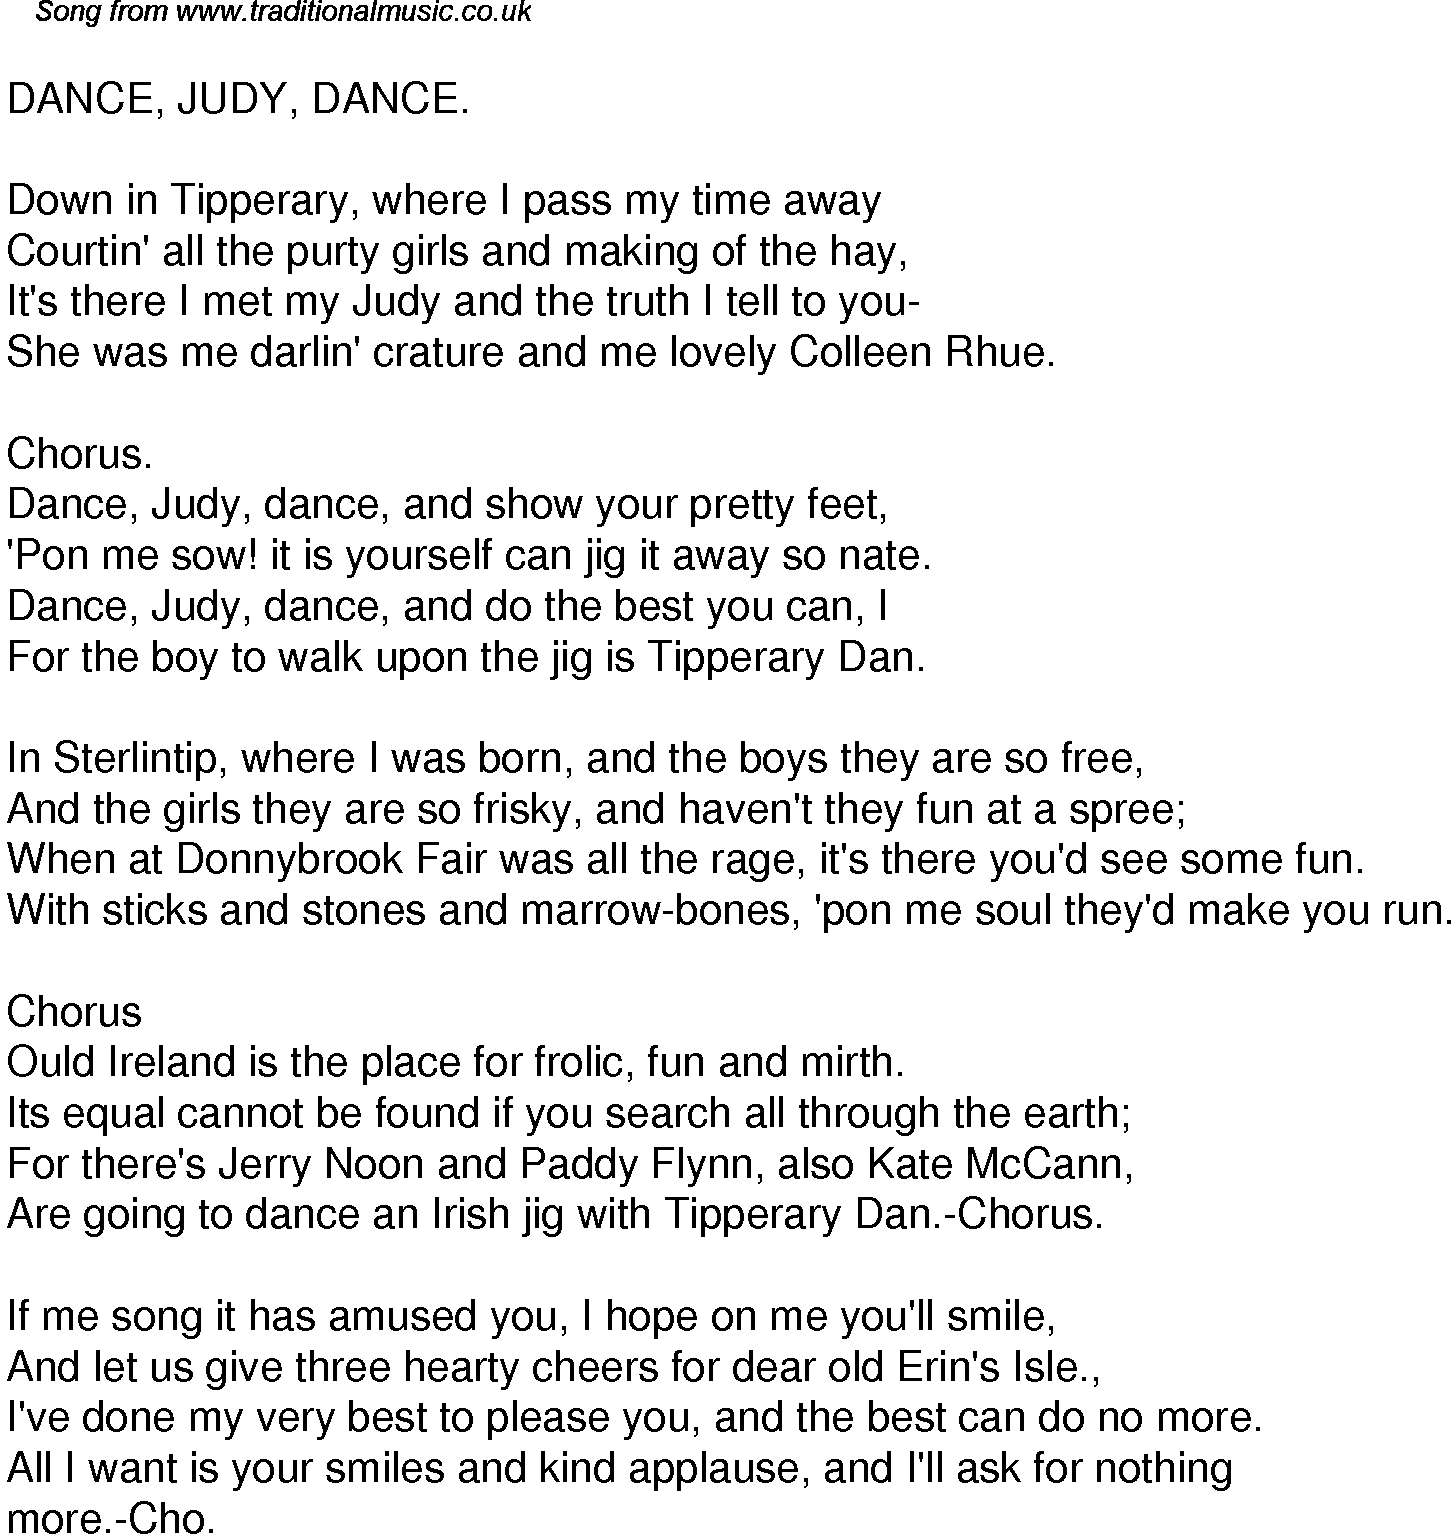 Old Time Song Lyrics For 32 Dance Judy Dance